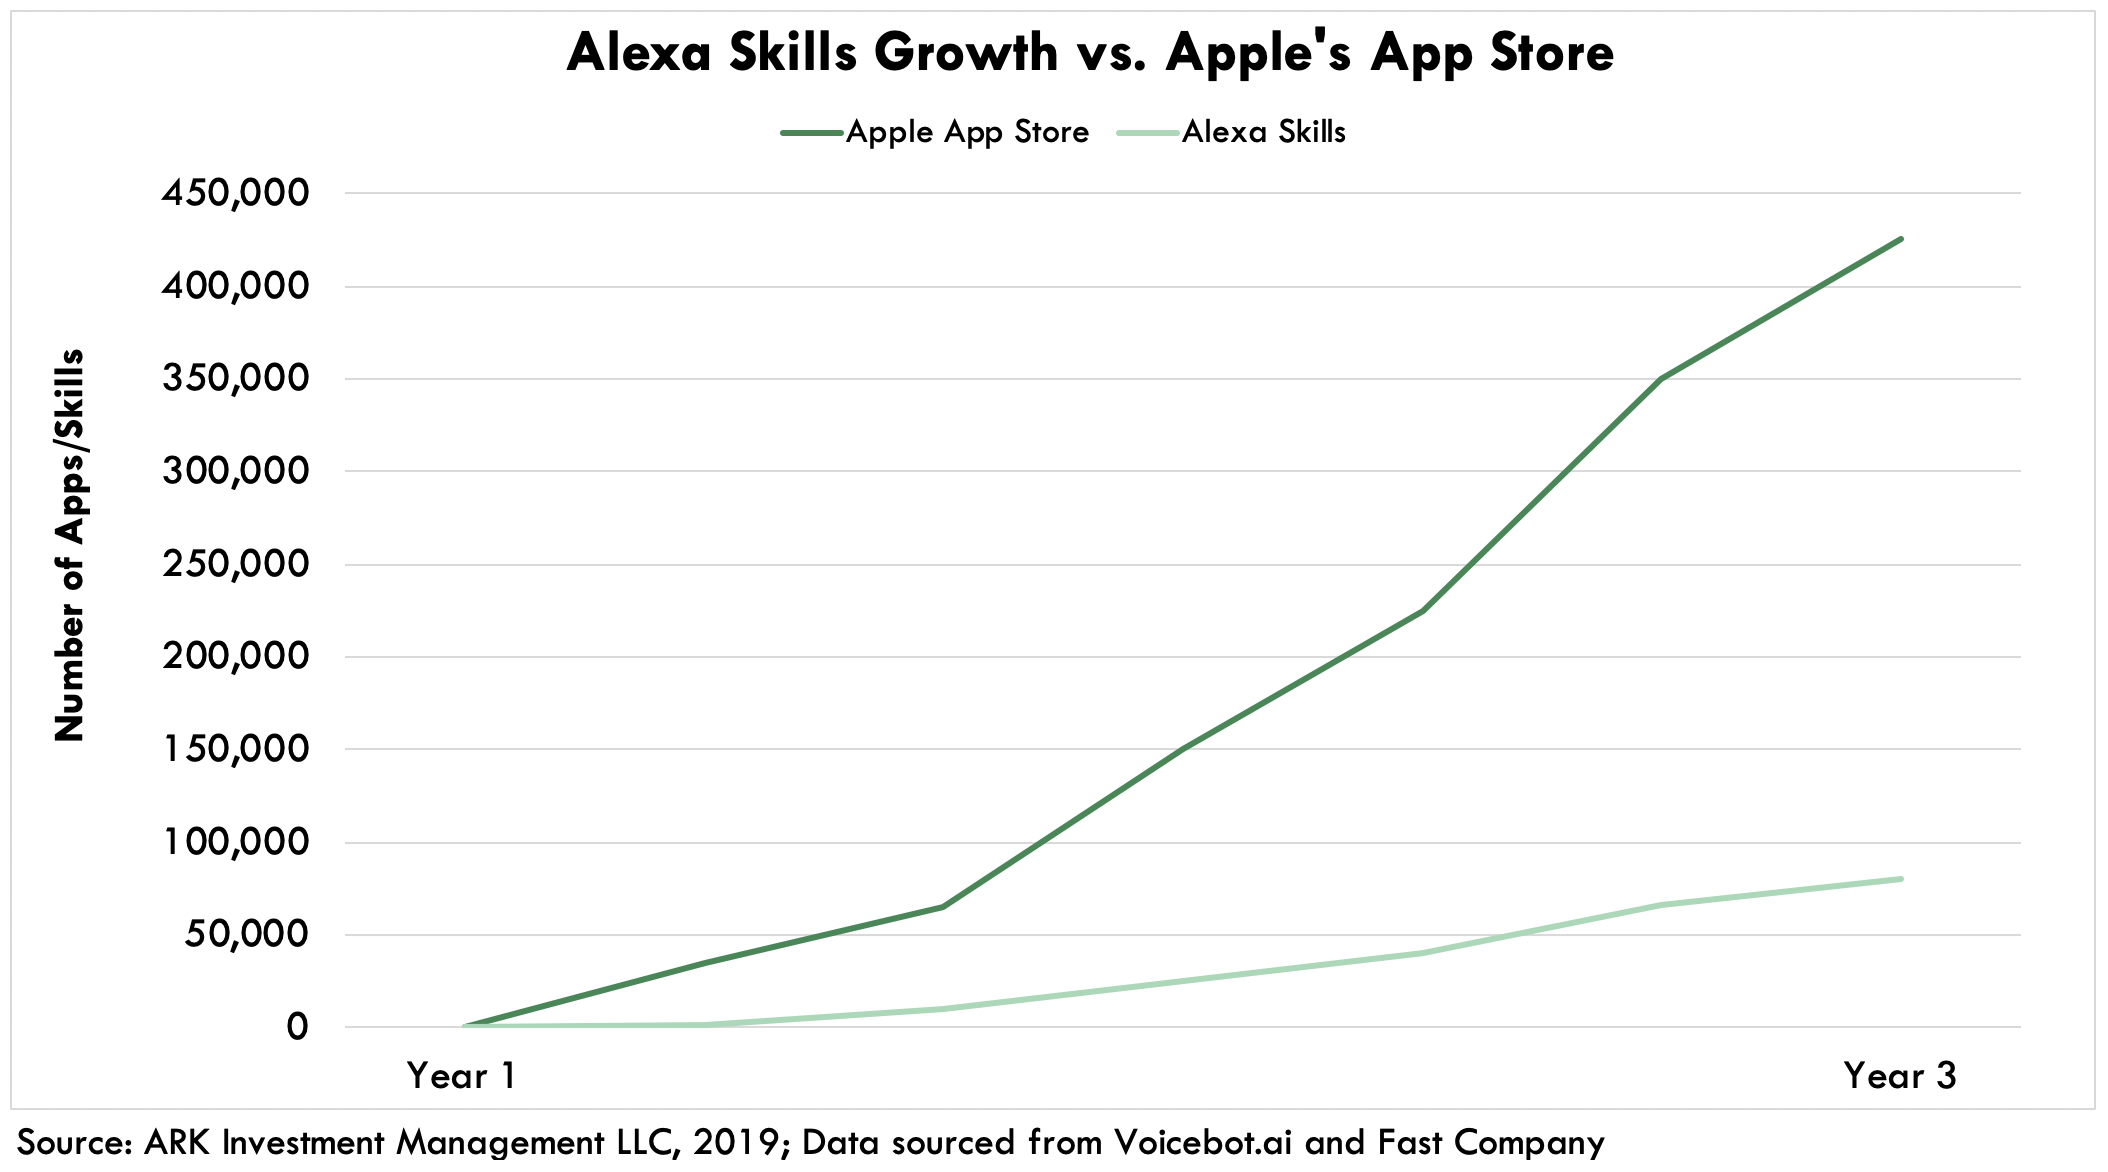 ARK Smart Speaker Alexa vs Apple Growth